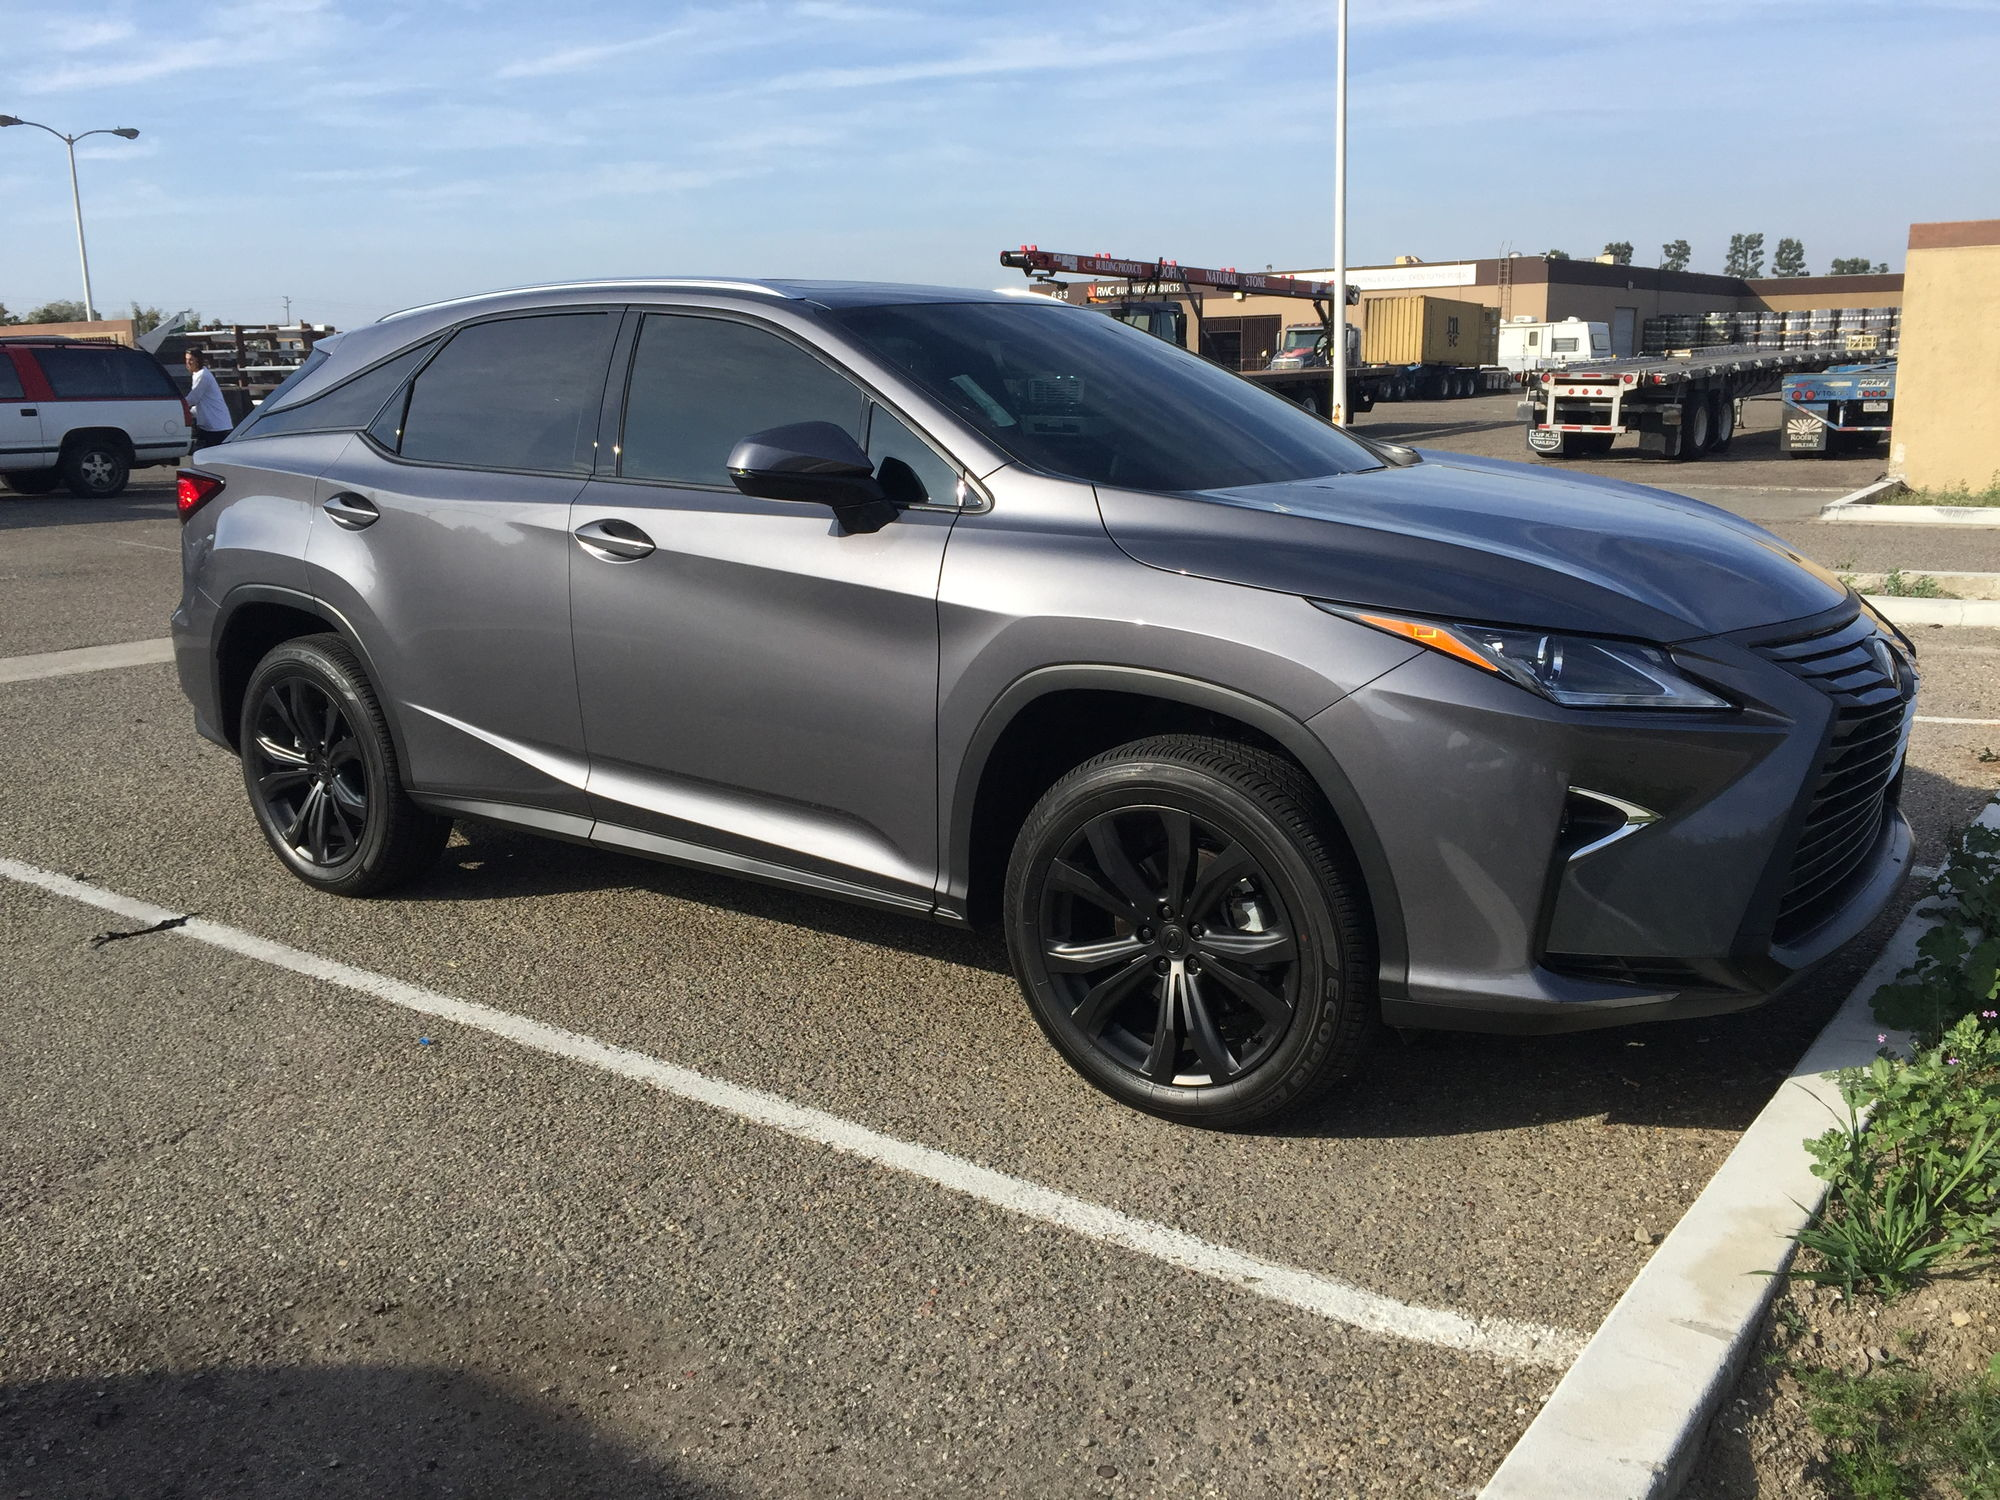 2016 lexus rx350 with plasti dip on chrome and wheels. Black Bedroom Furniture Sets. Home Design Ideas